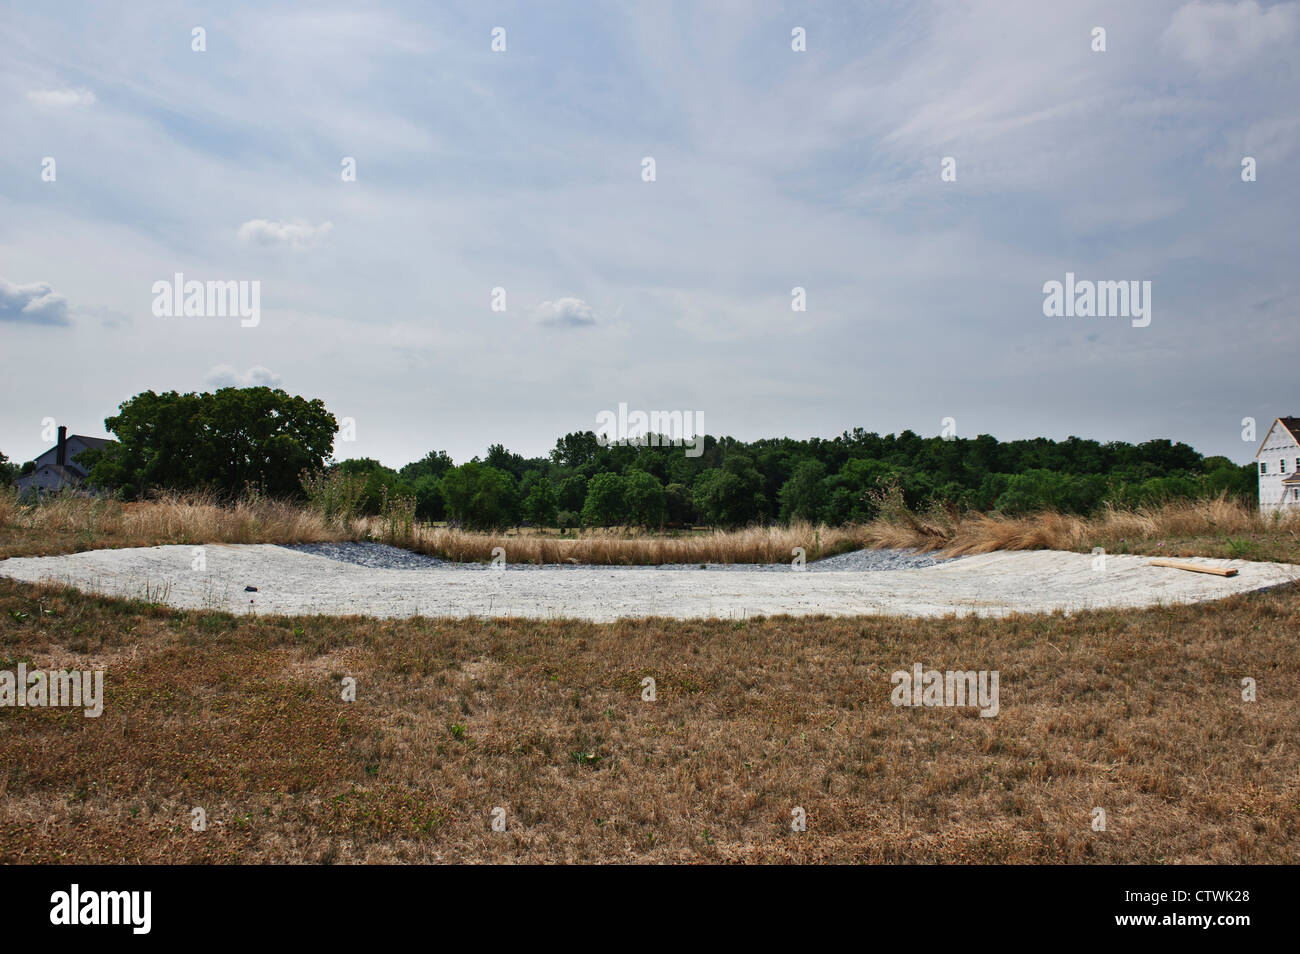 OVERFLOW SPILLWAY TO ACTIVE SETTLING BASIN - Stock Image